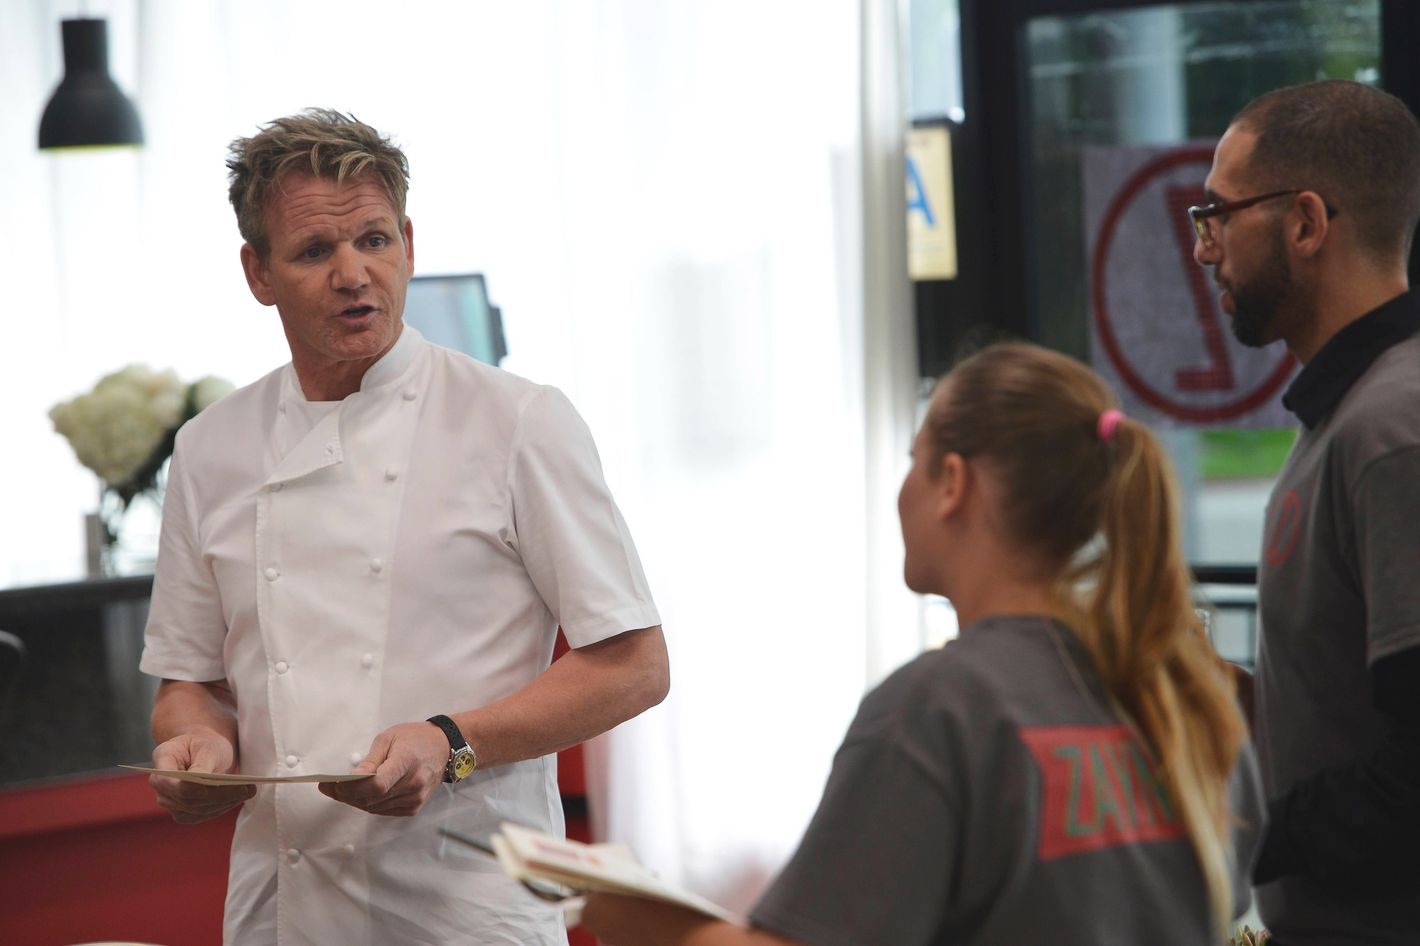 over 60 percent of the restaurants on 'kitchen nightmares' are now